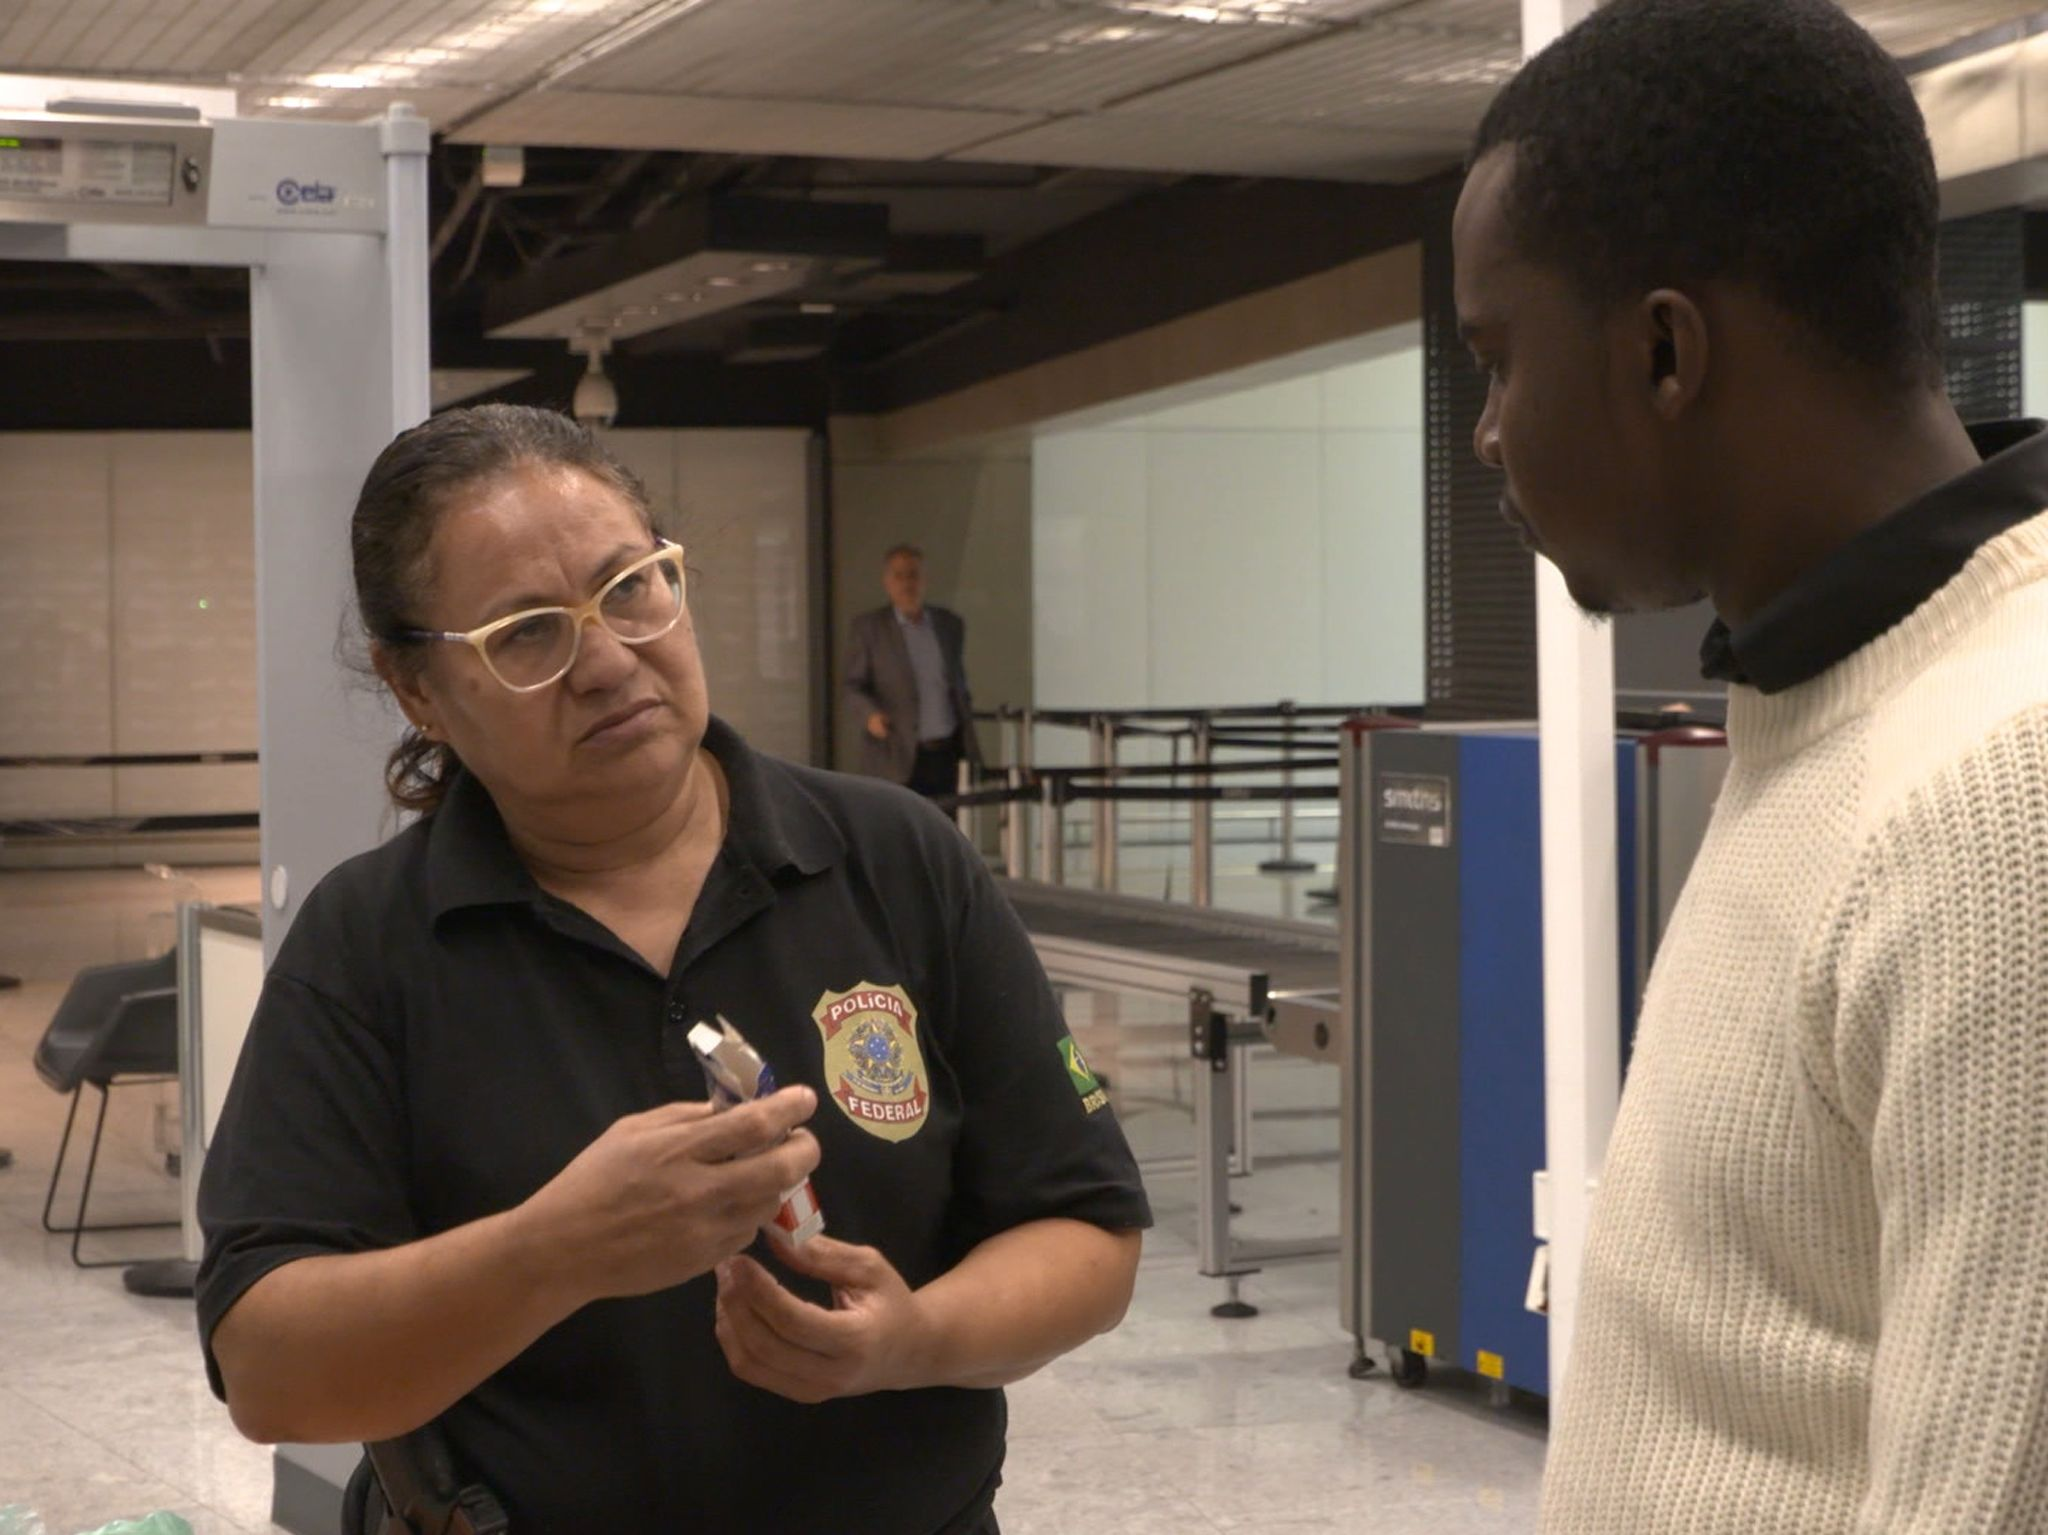 Police interrogate a passenger. This image is from Airport Security. [Photo of the day - October 2020]